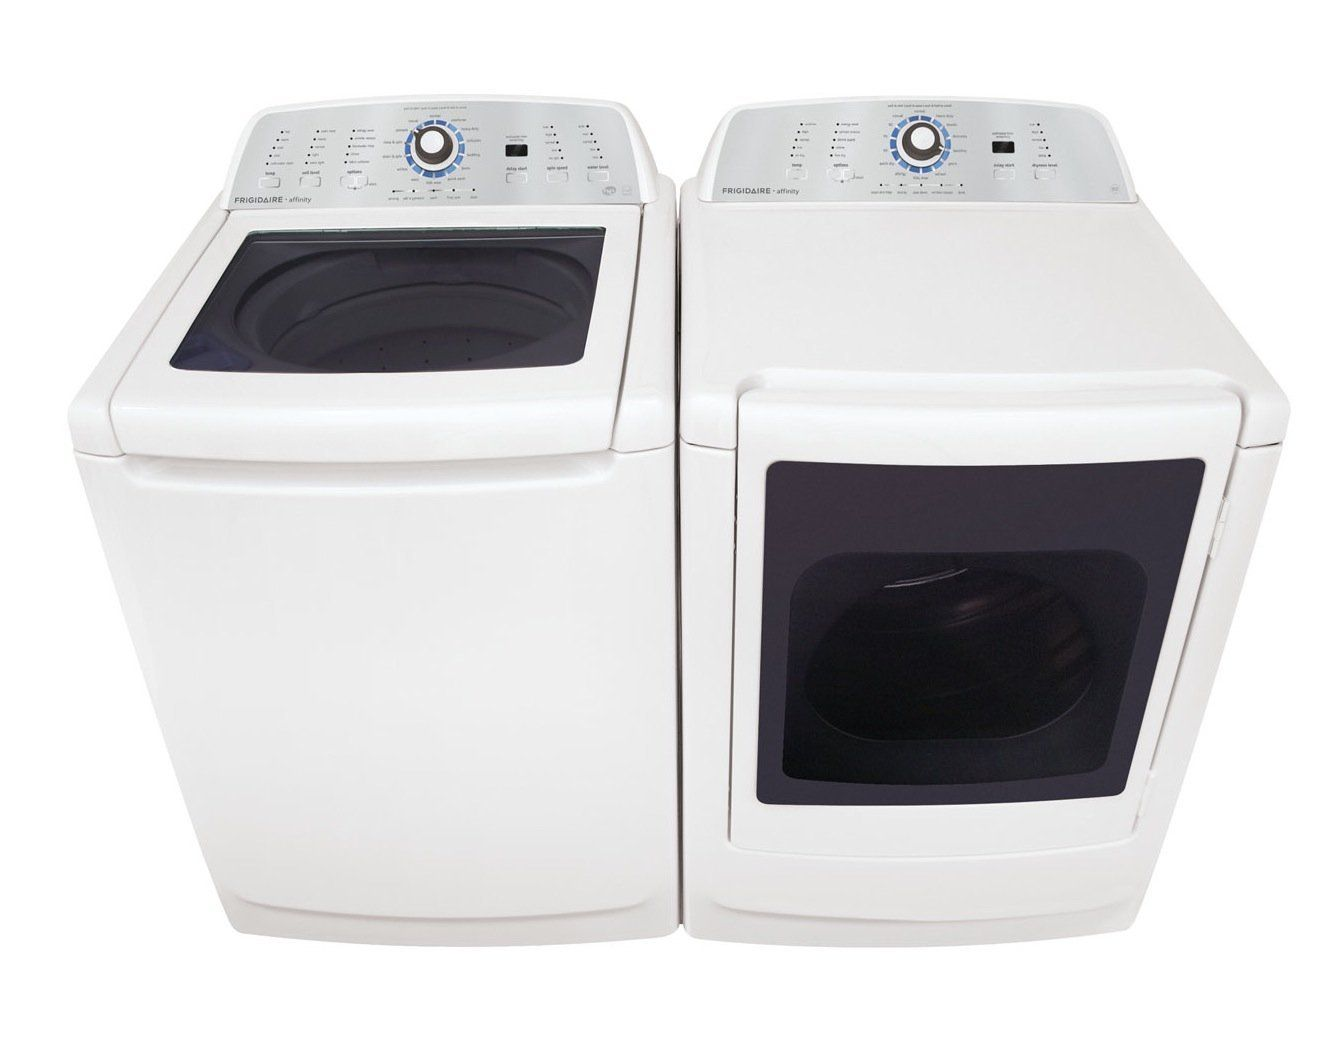 Washer dryer for the home pinterest dryer and washer